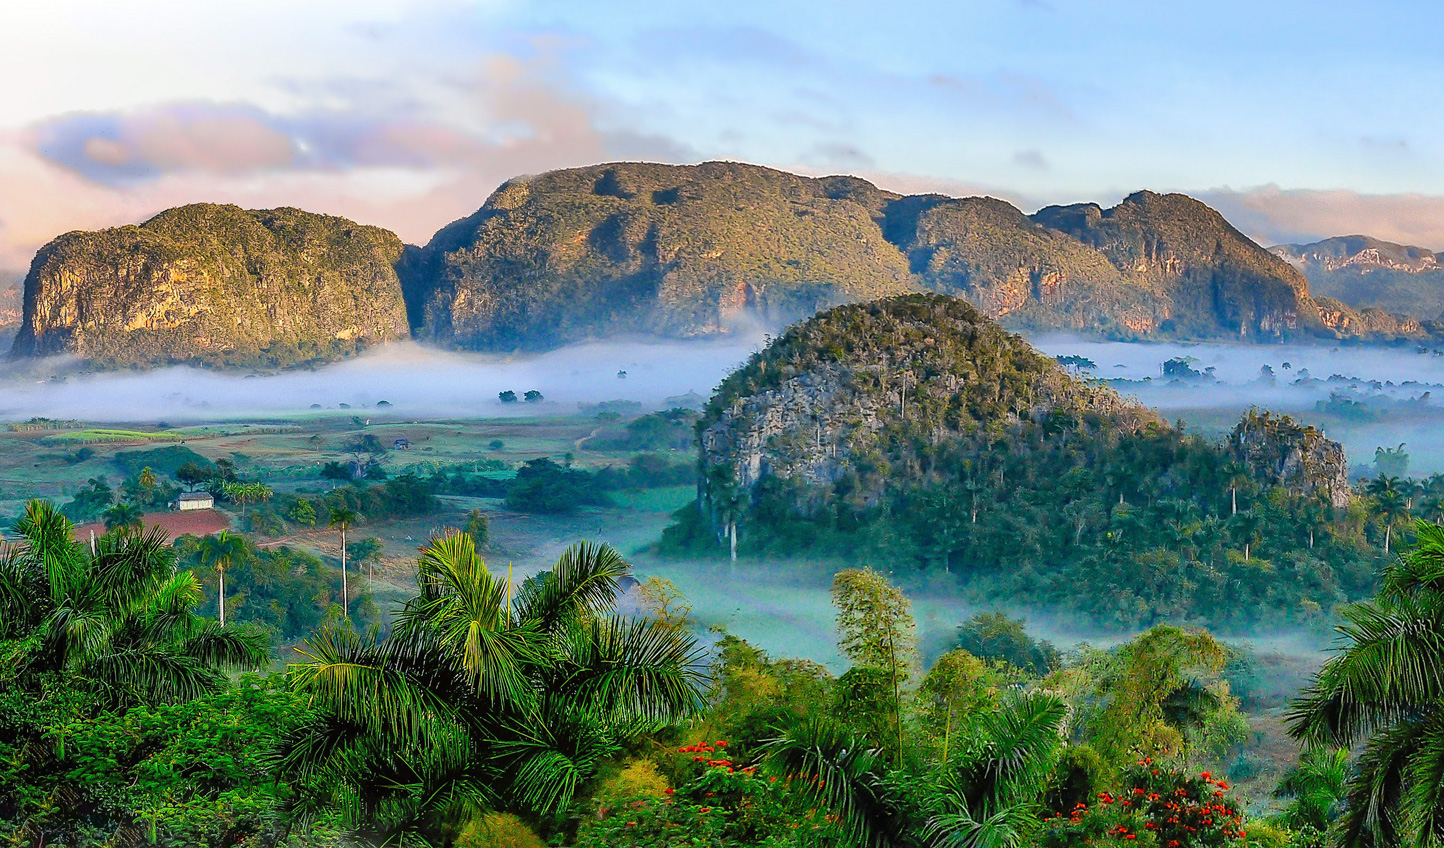 Admire the stunning landscaoe of Vinales Valley